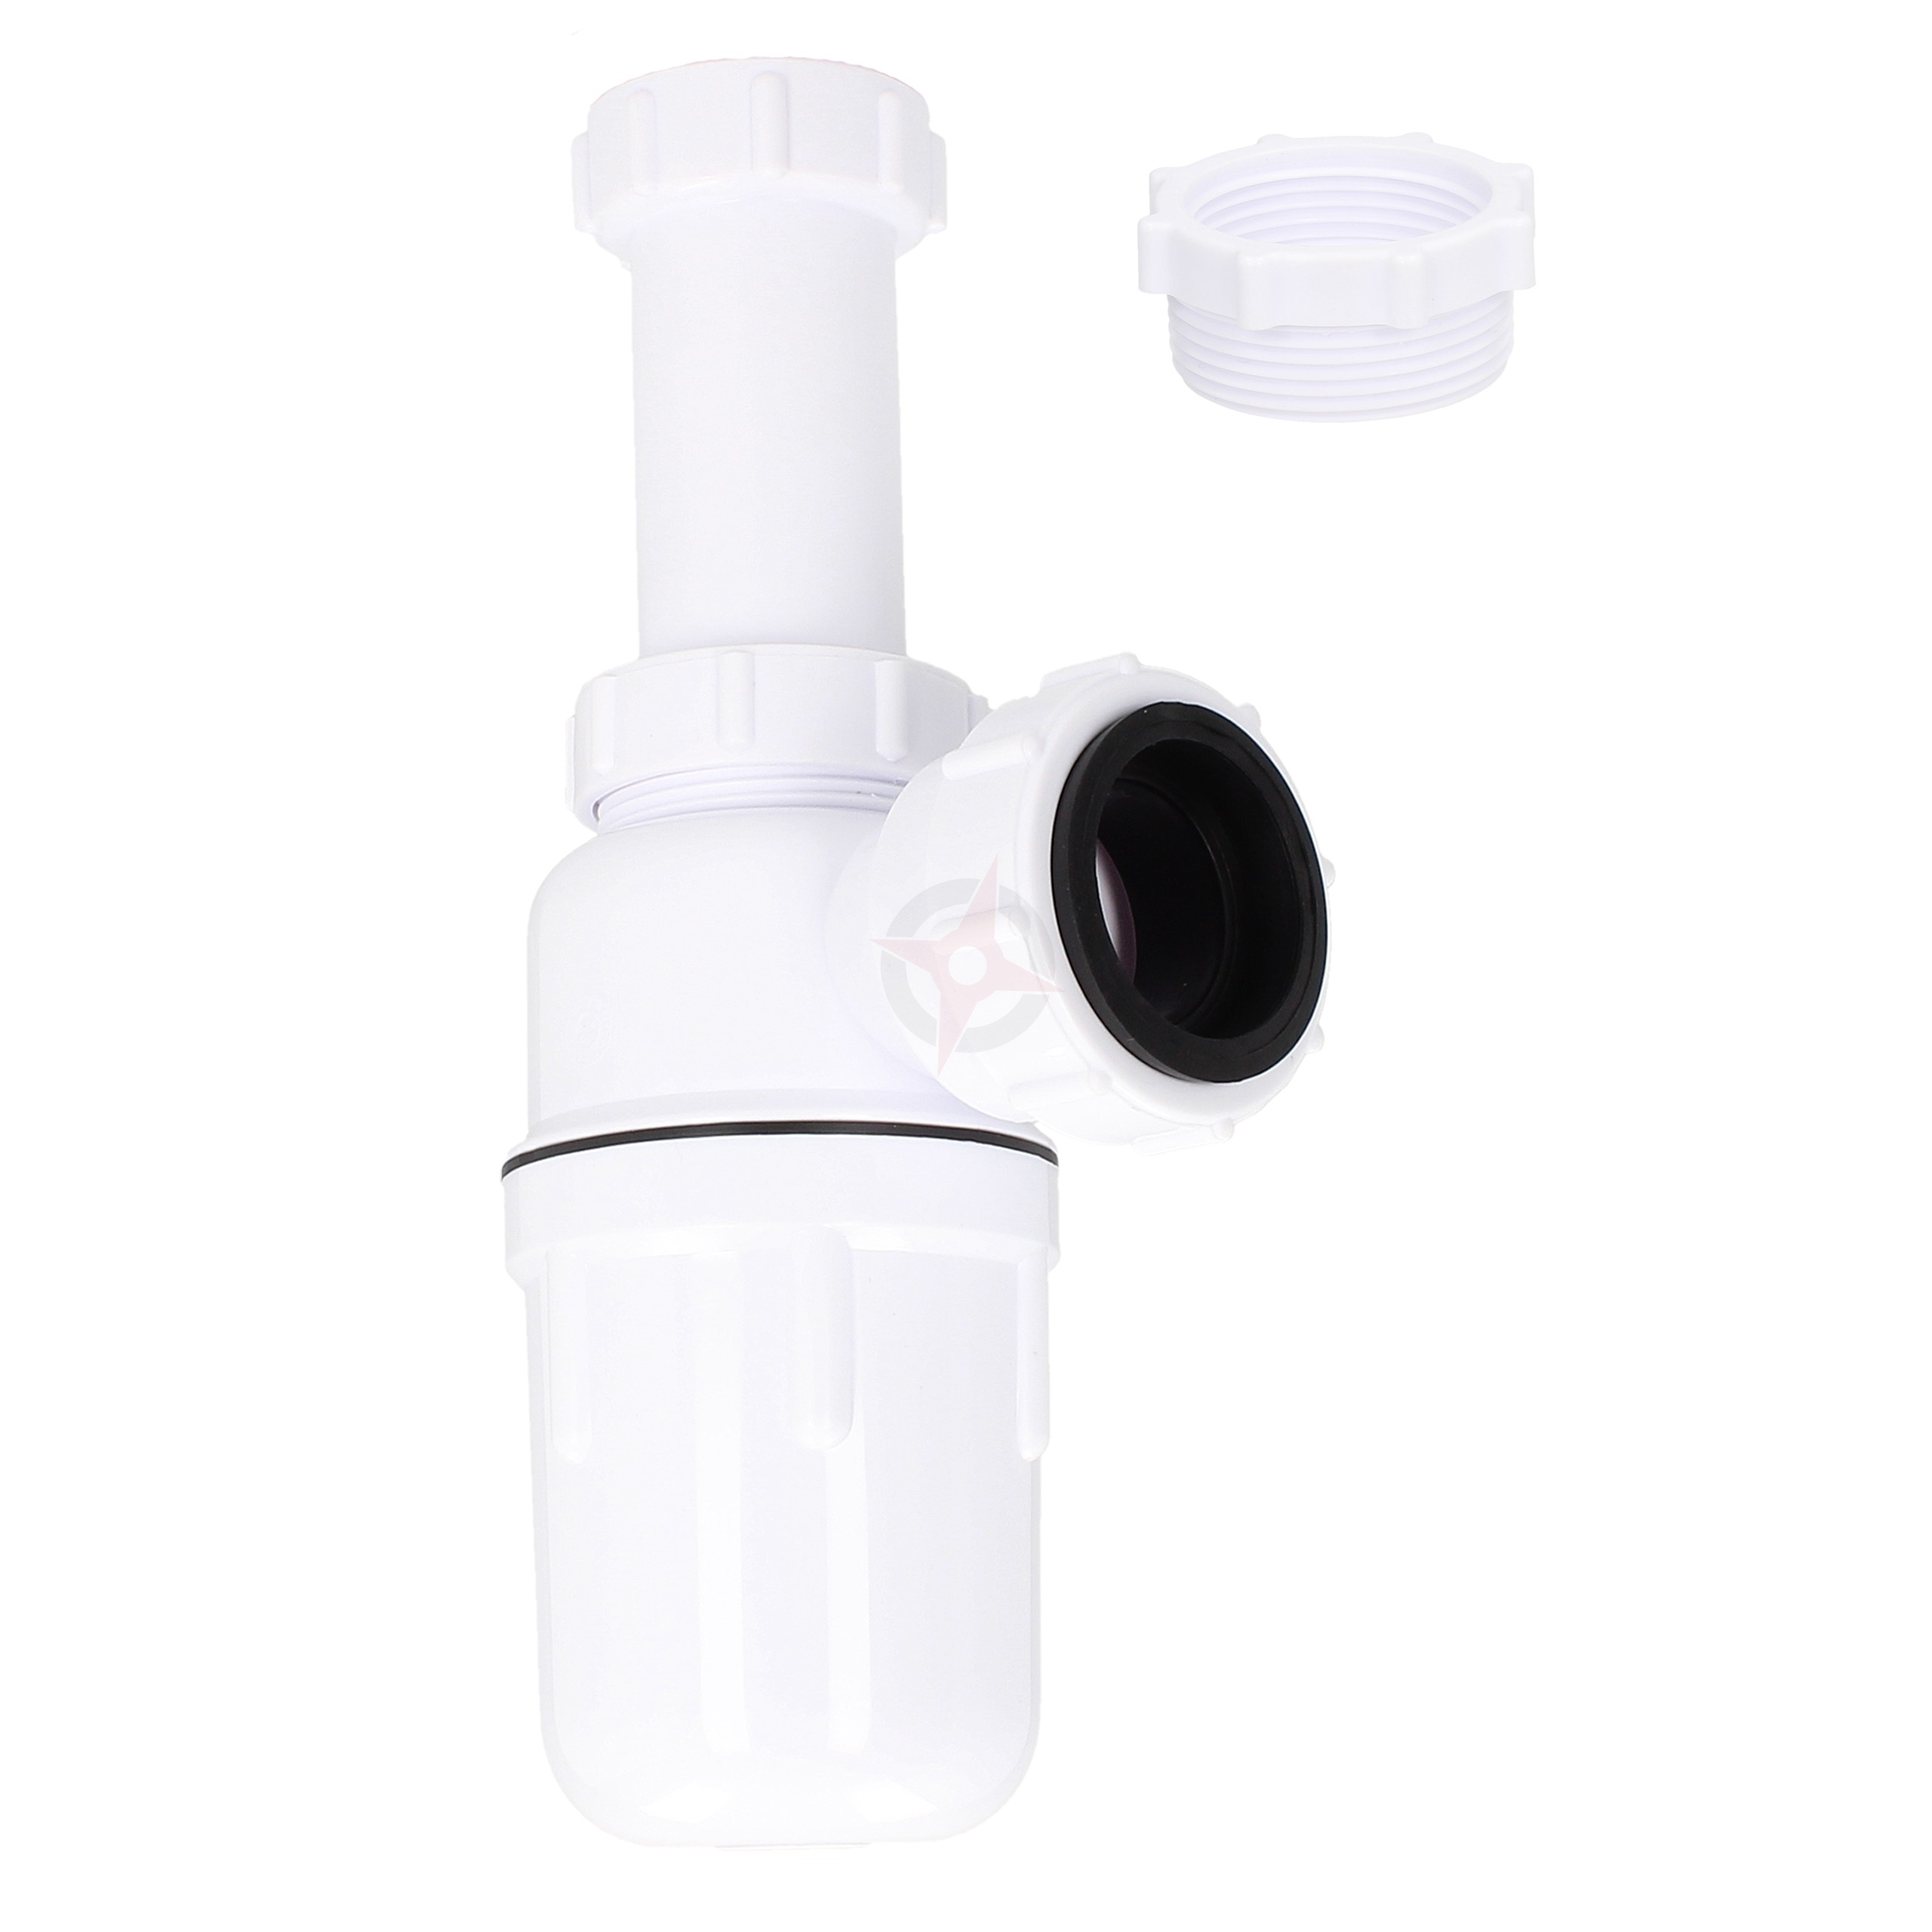 "Kimsion Multiple Plastic Bottle Trap with 6"" Telescope and 32mm x 38mm Adaptor"